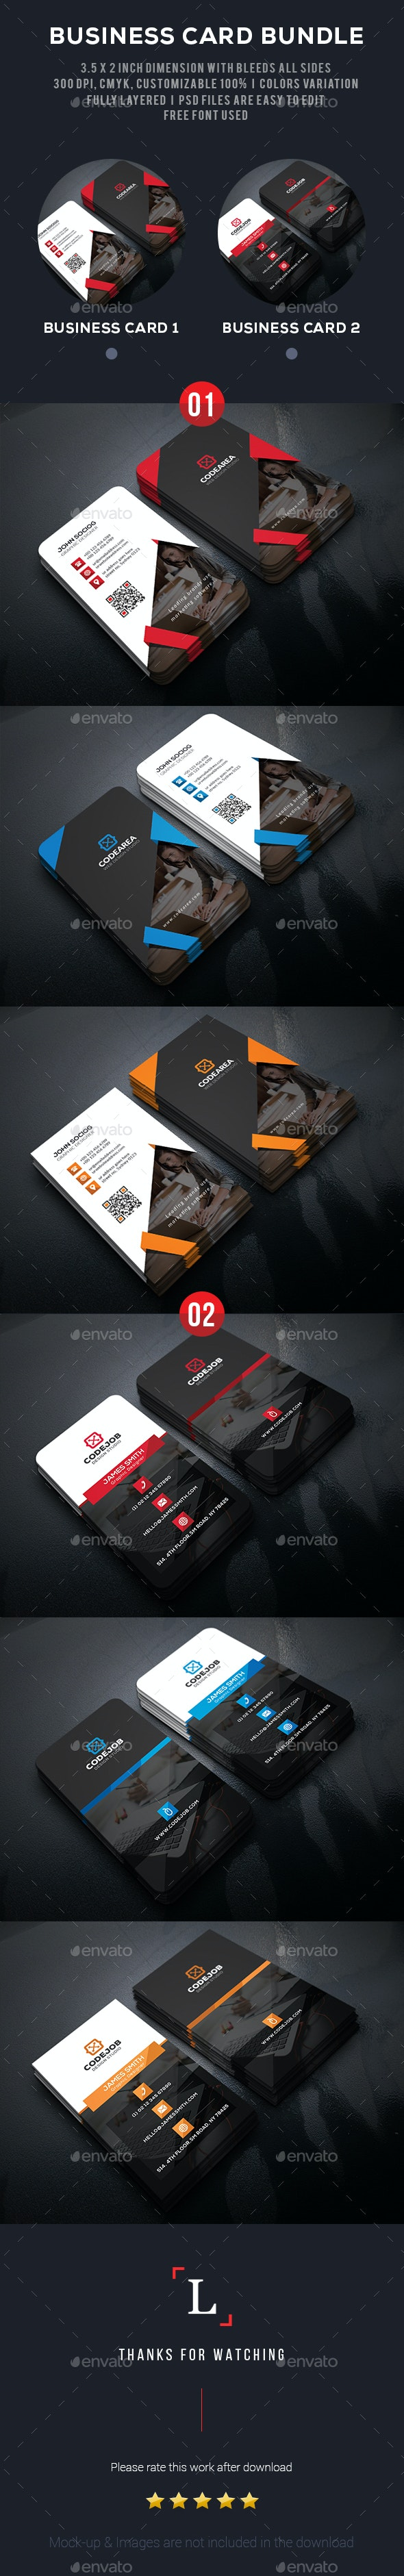 Dark Business Card Bundle - Business Cards Print Templates